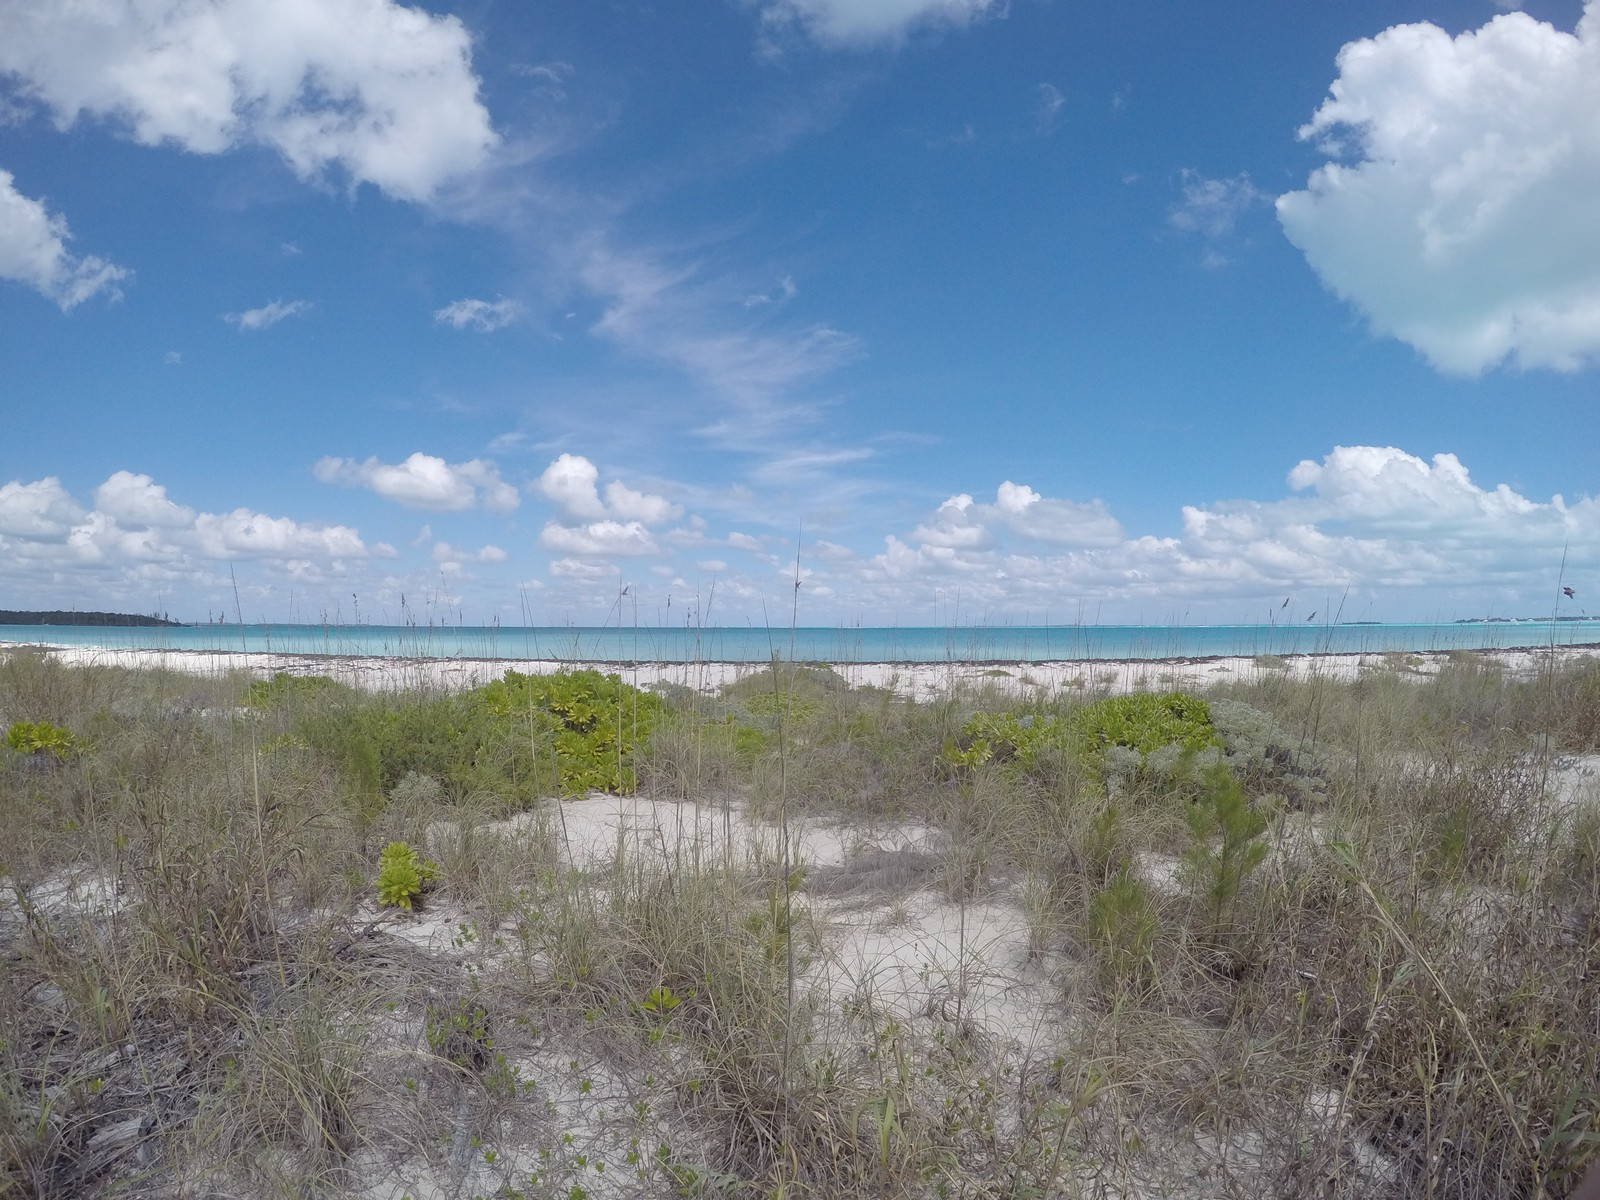 Land for Sale at Lot 27 Ocean Blvd. Treasure Cay, Abaco, Bahamas